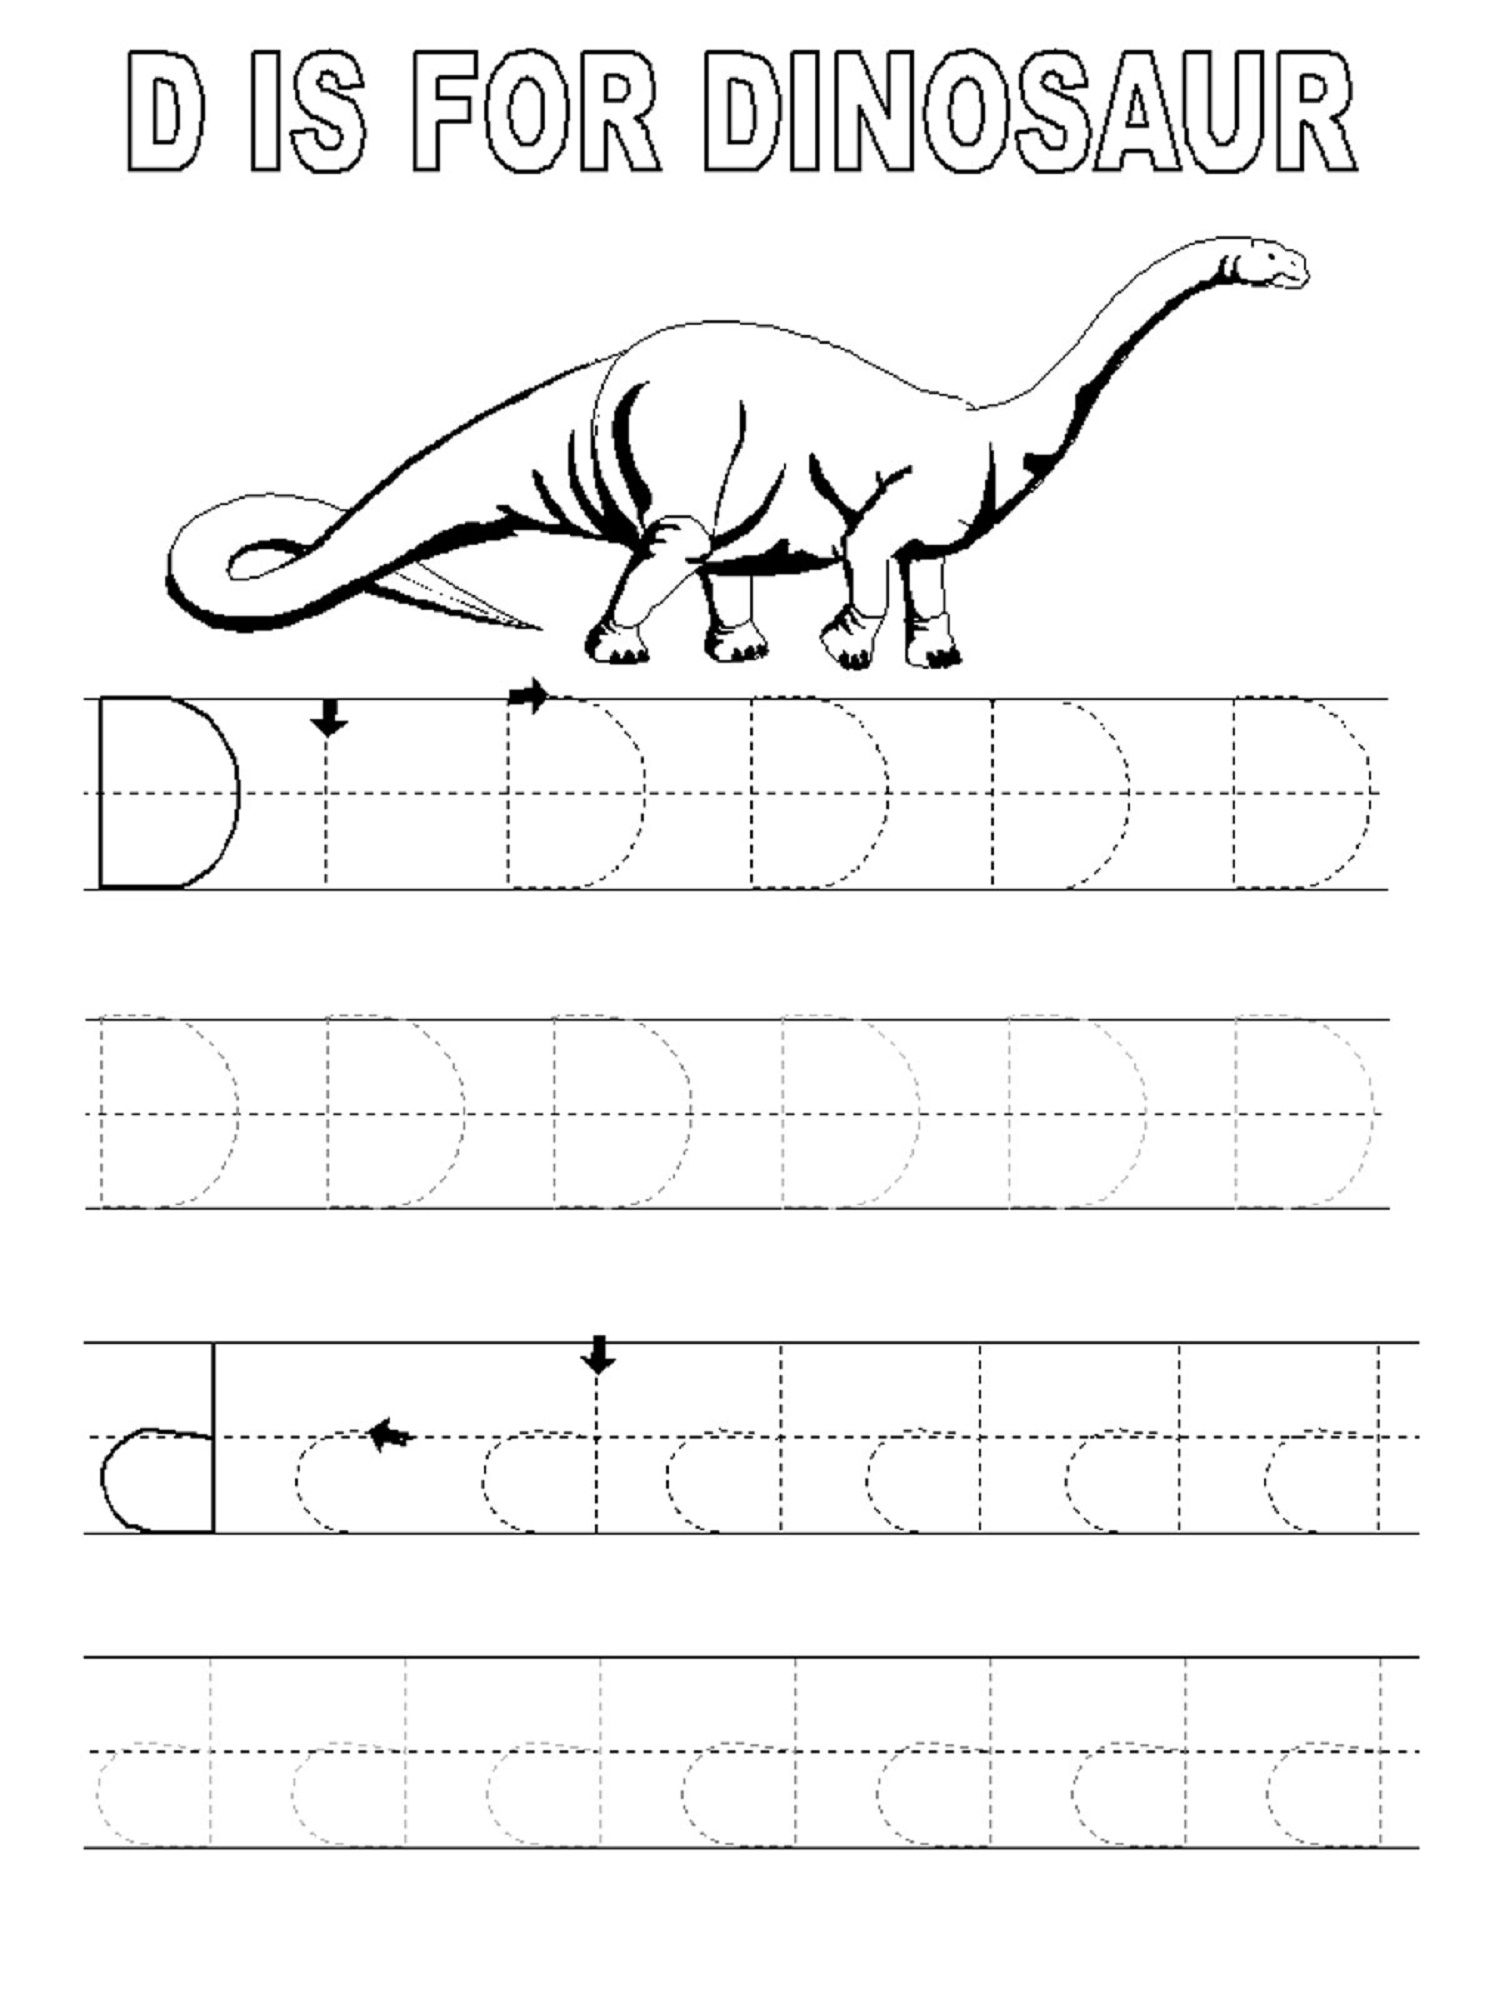 Abc sheets for preschool - Abc Tracing Sheets Benefits For Elementary Kids